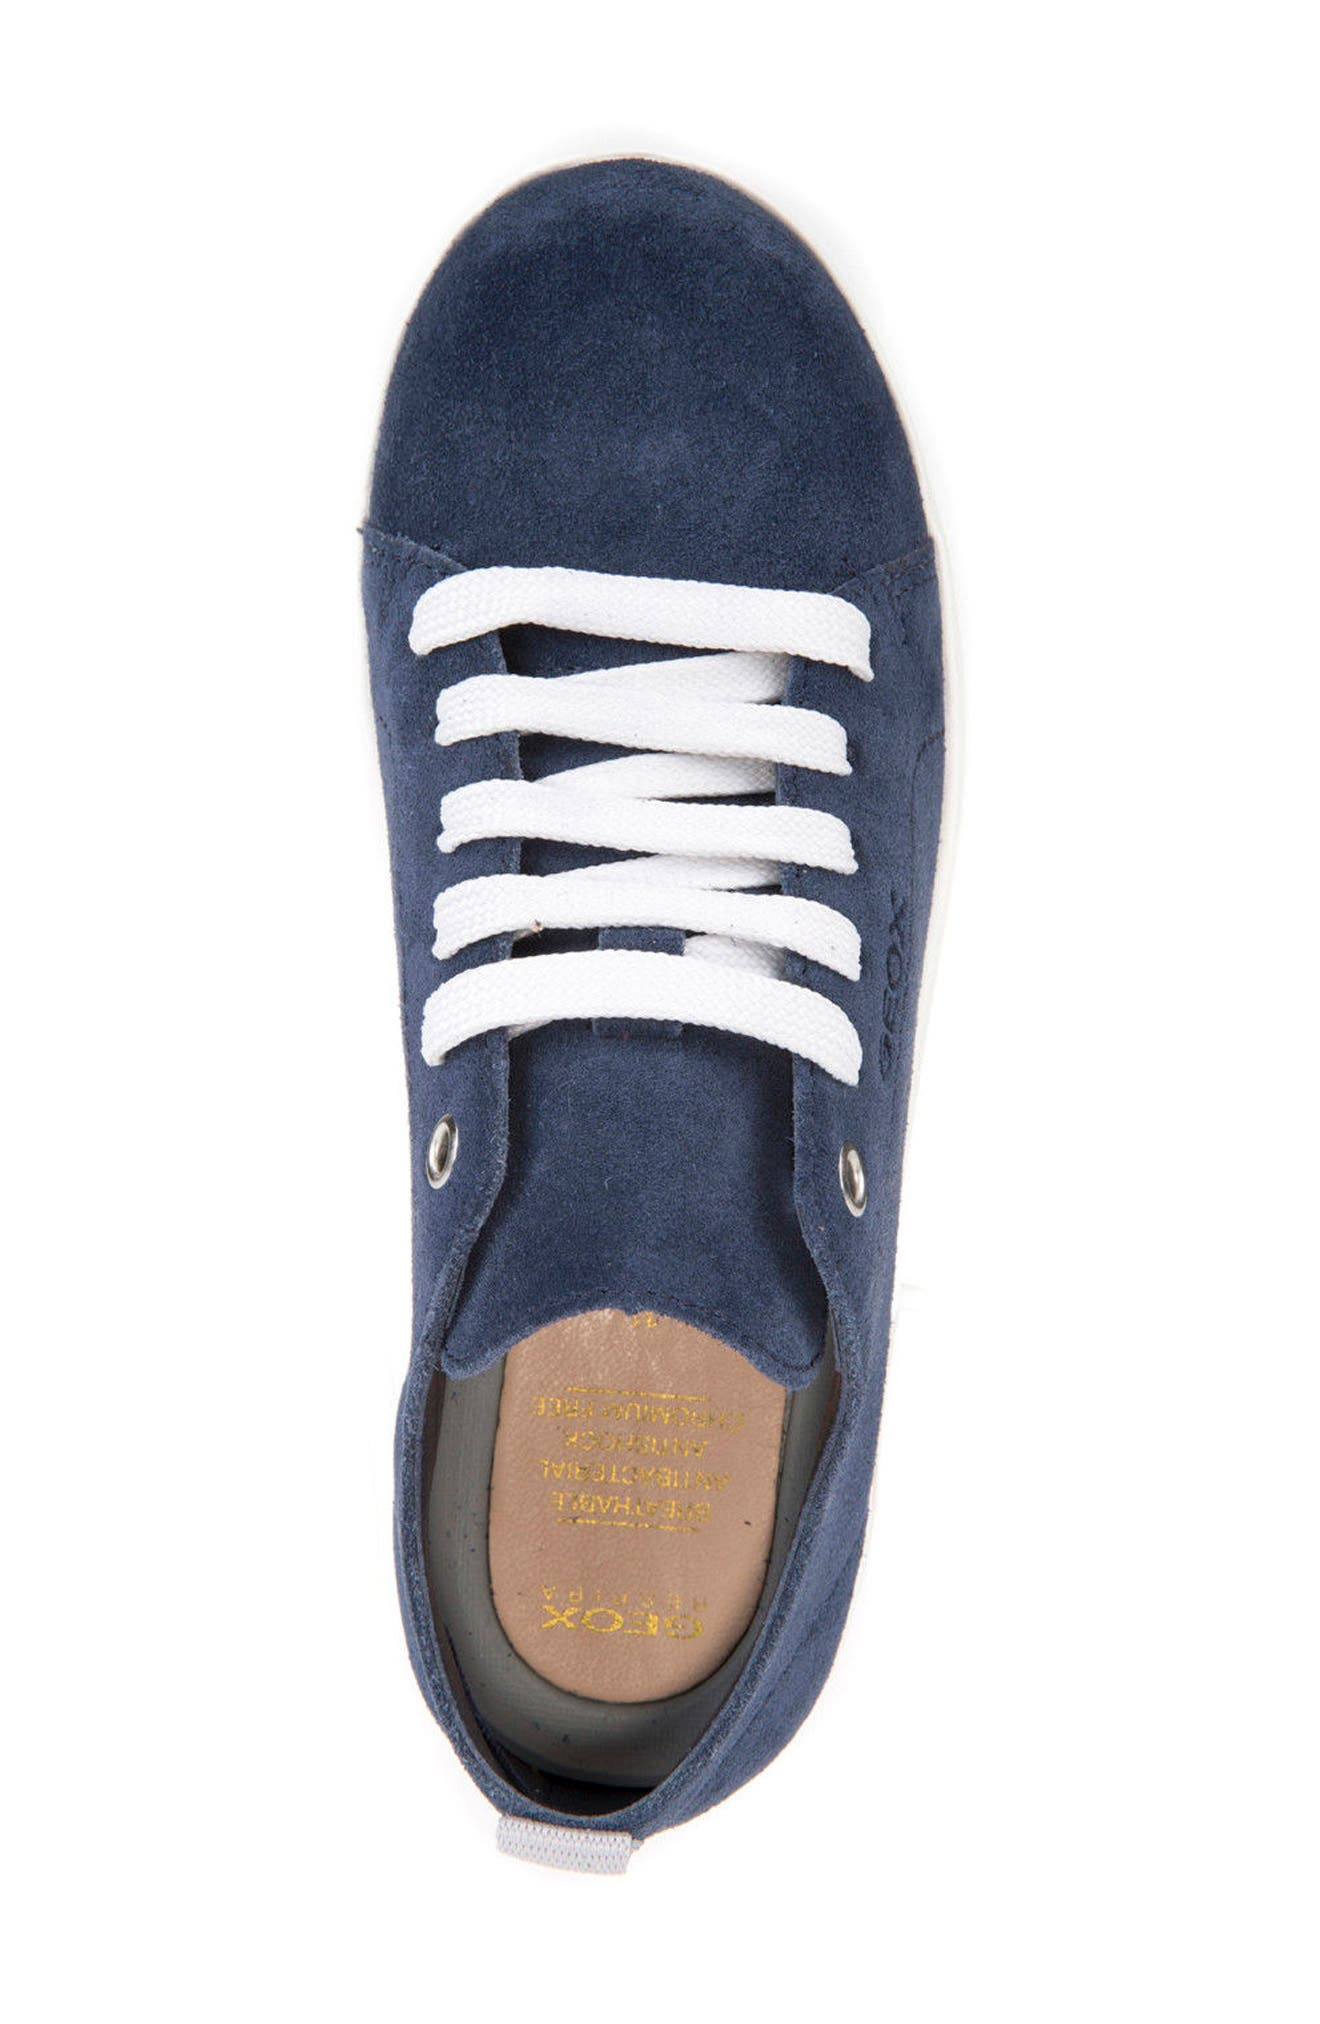 Anthor Low Top Sneaker,                             Alternate thumbnail 4, color,                             Navy